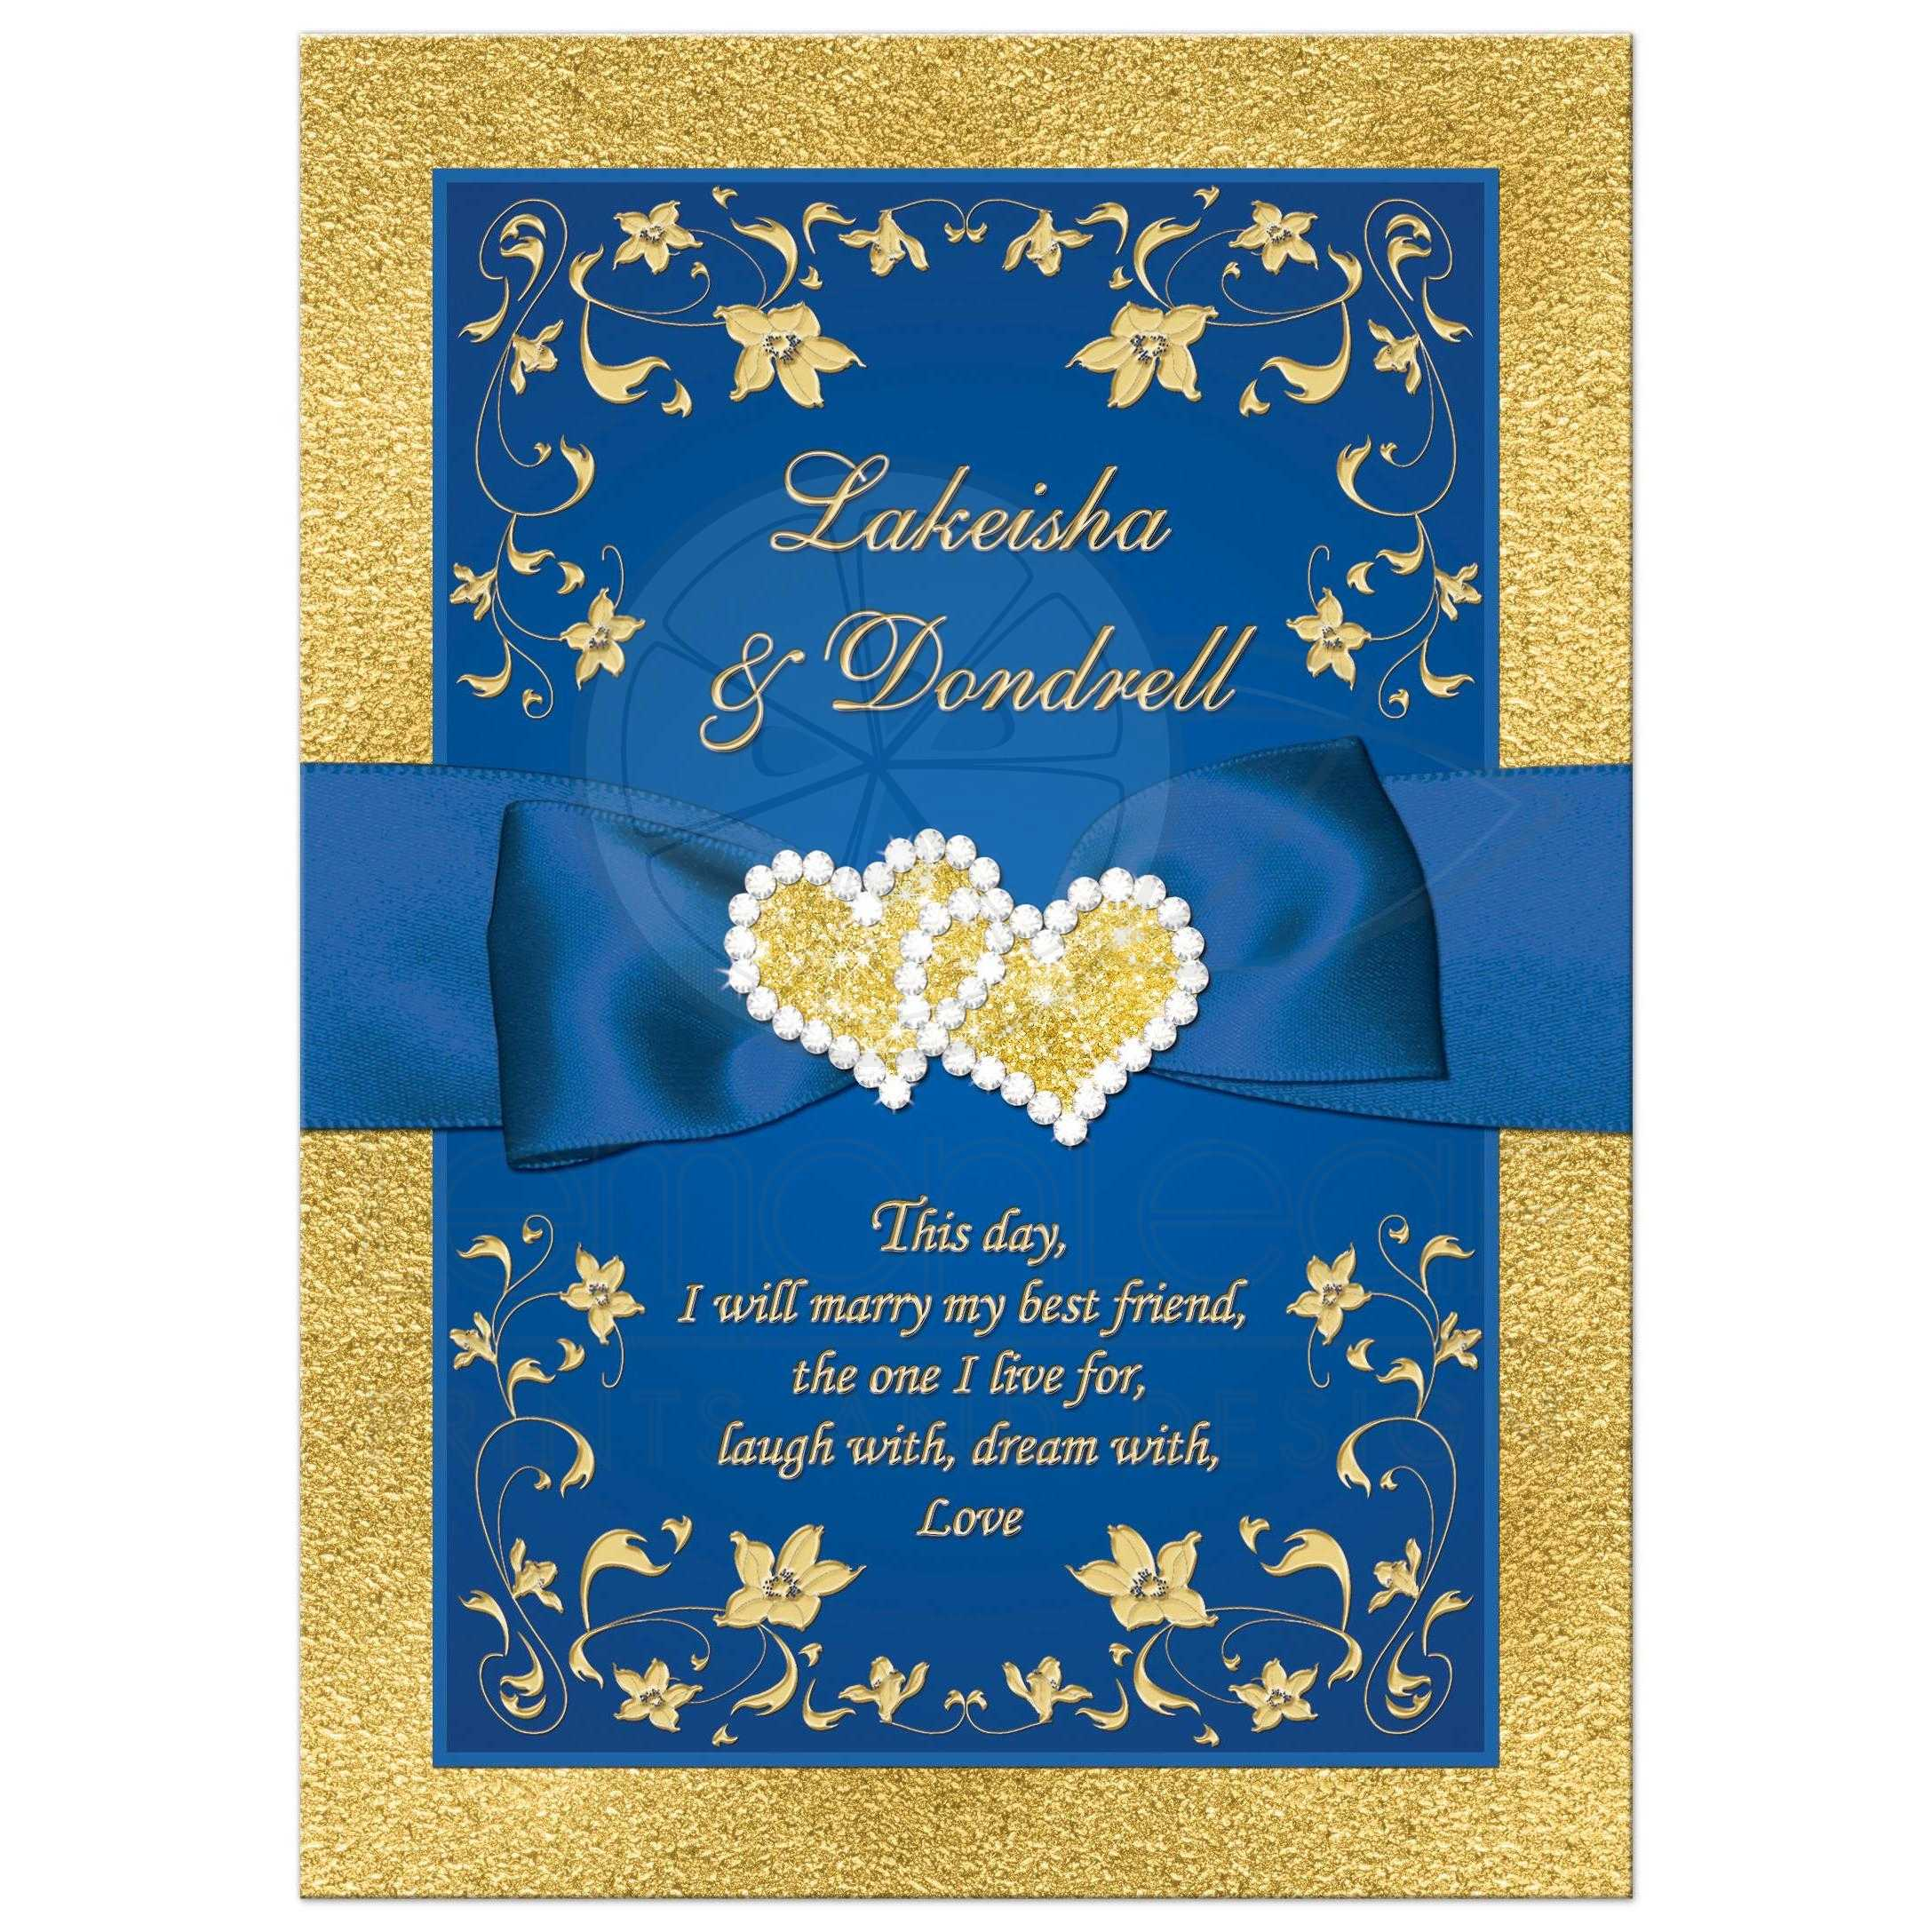 Rroyal Blue And Gold Foil Fl Wedding Invitation With Joined Jewel Hearts Ribbon